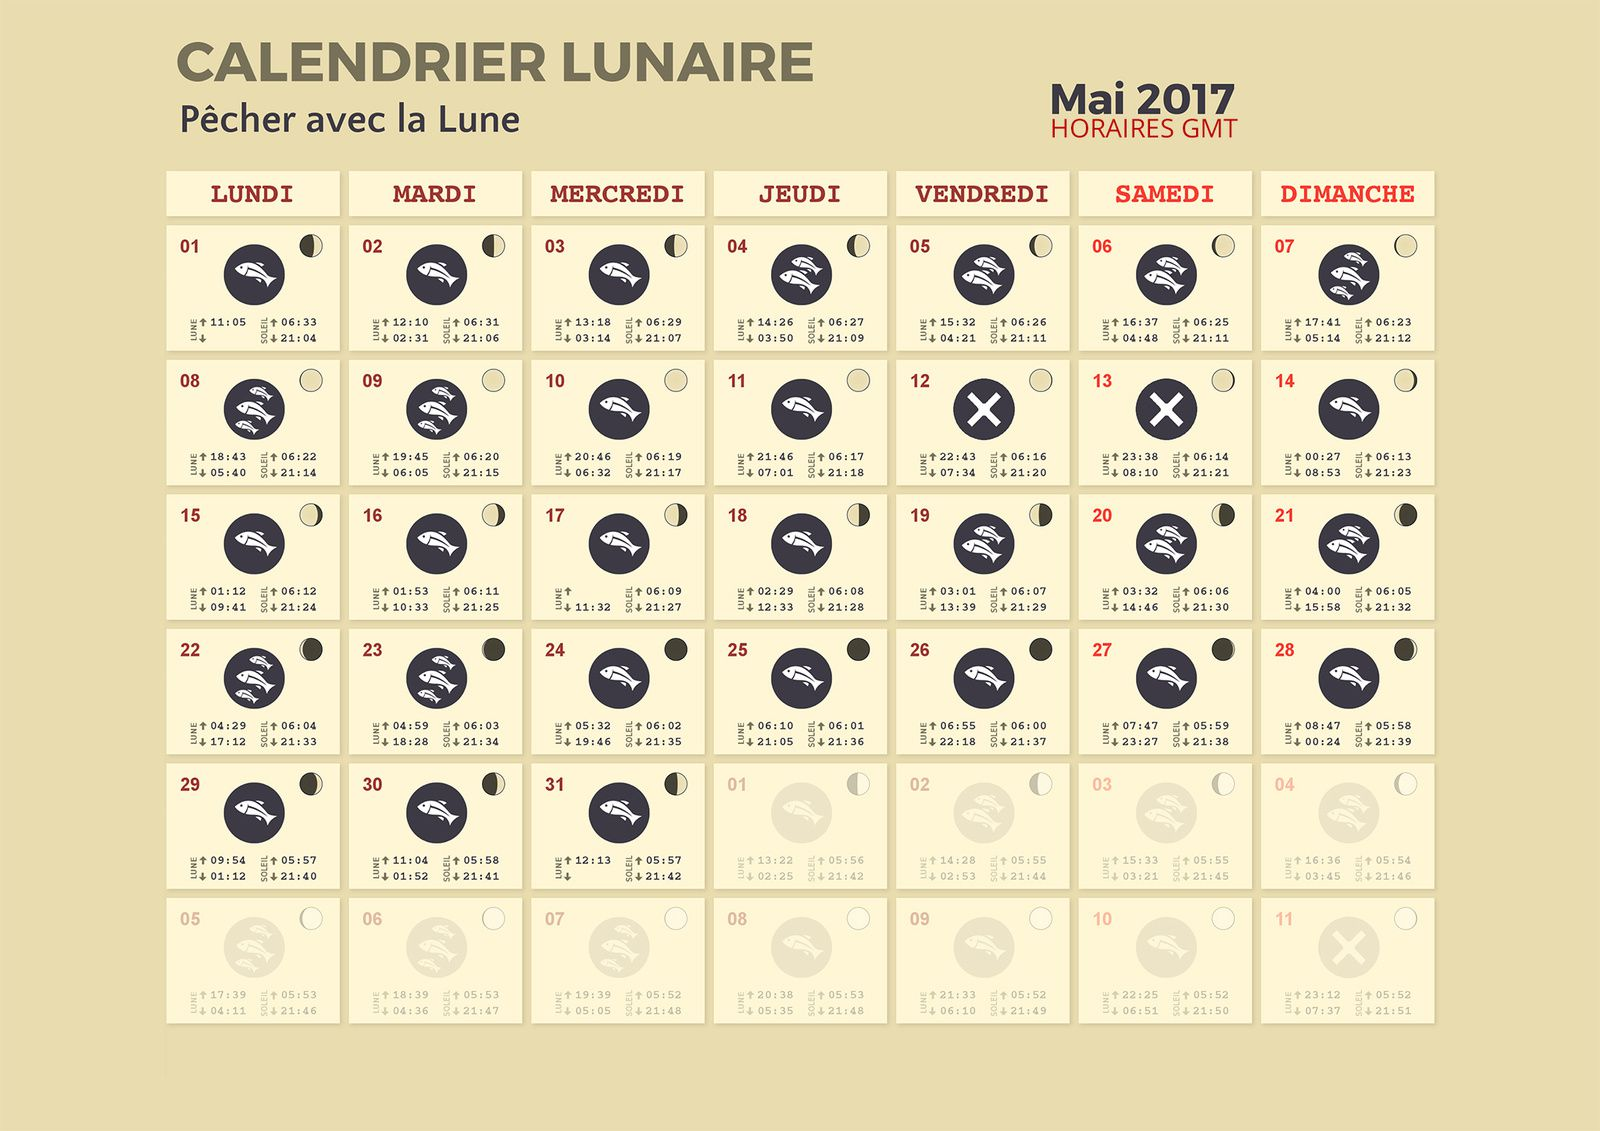 calendrier lunaire mai 2017 truitepassion. Black Bedroom Furniture Sets. Home Design Ideas